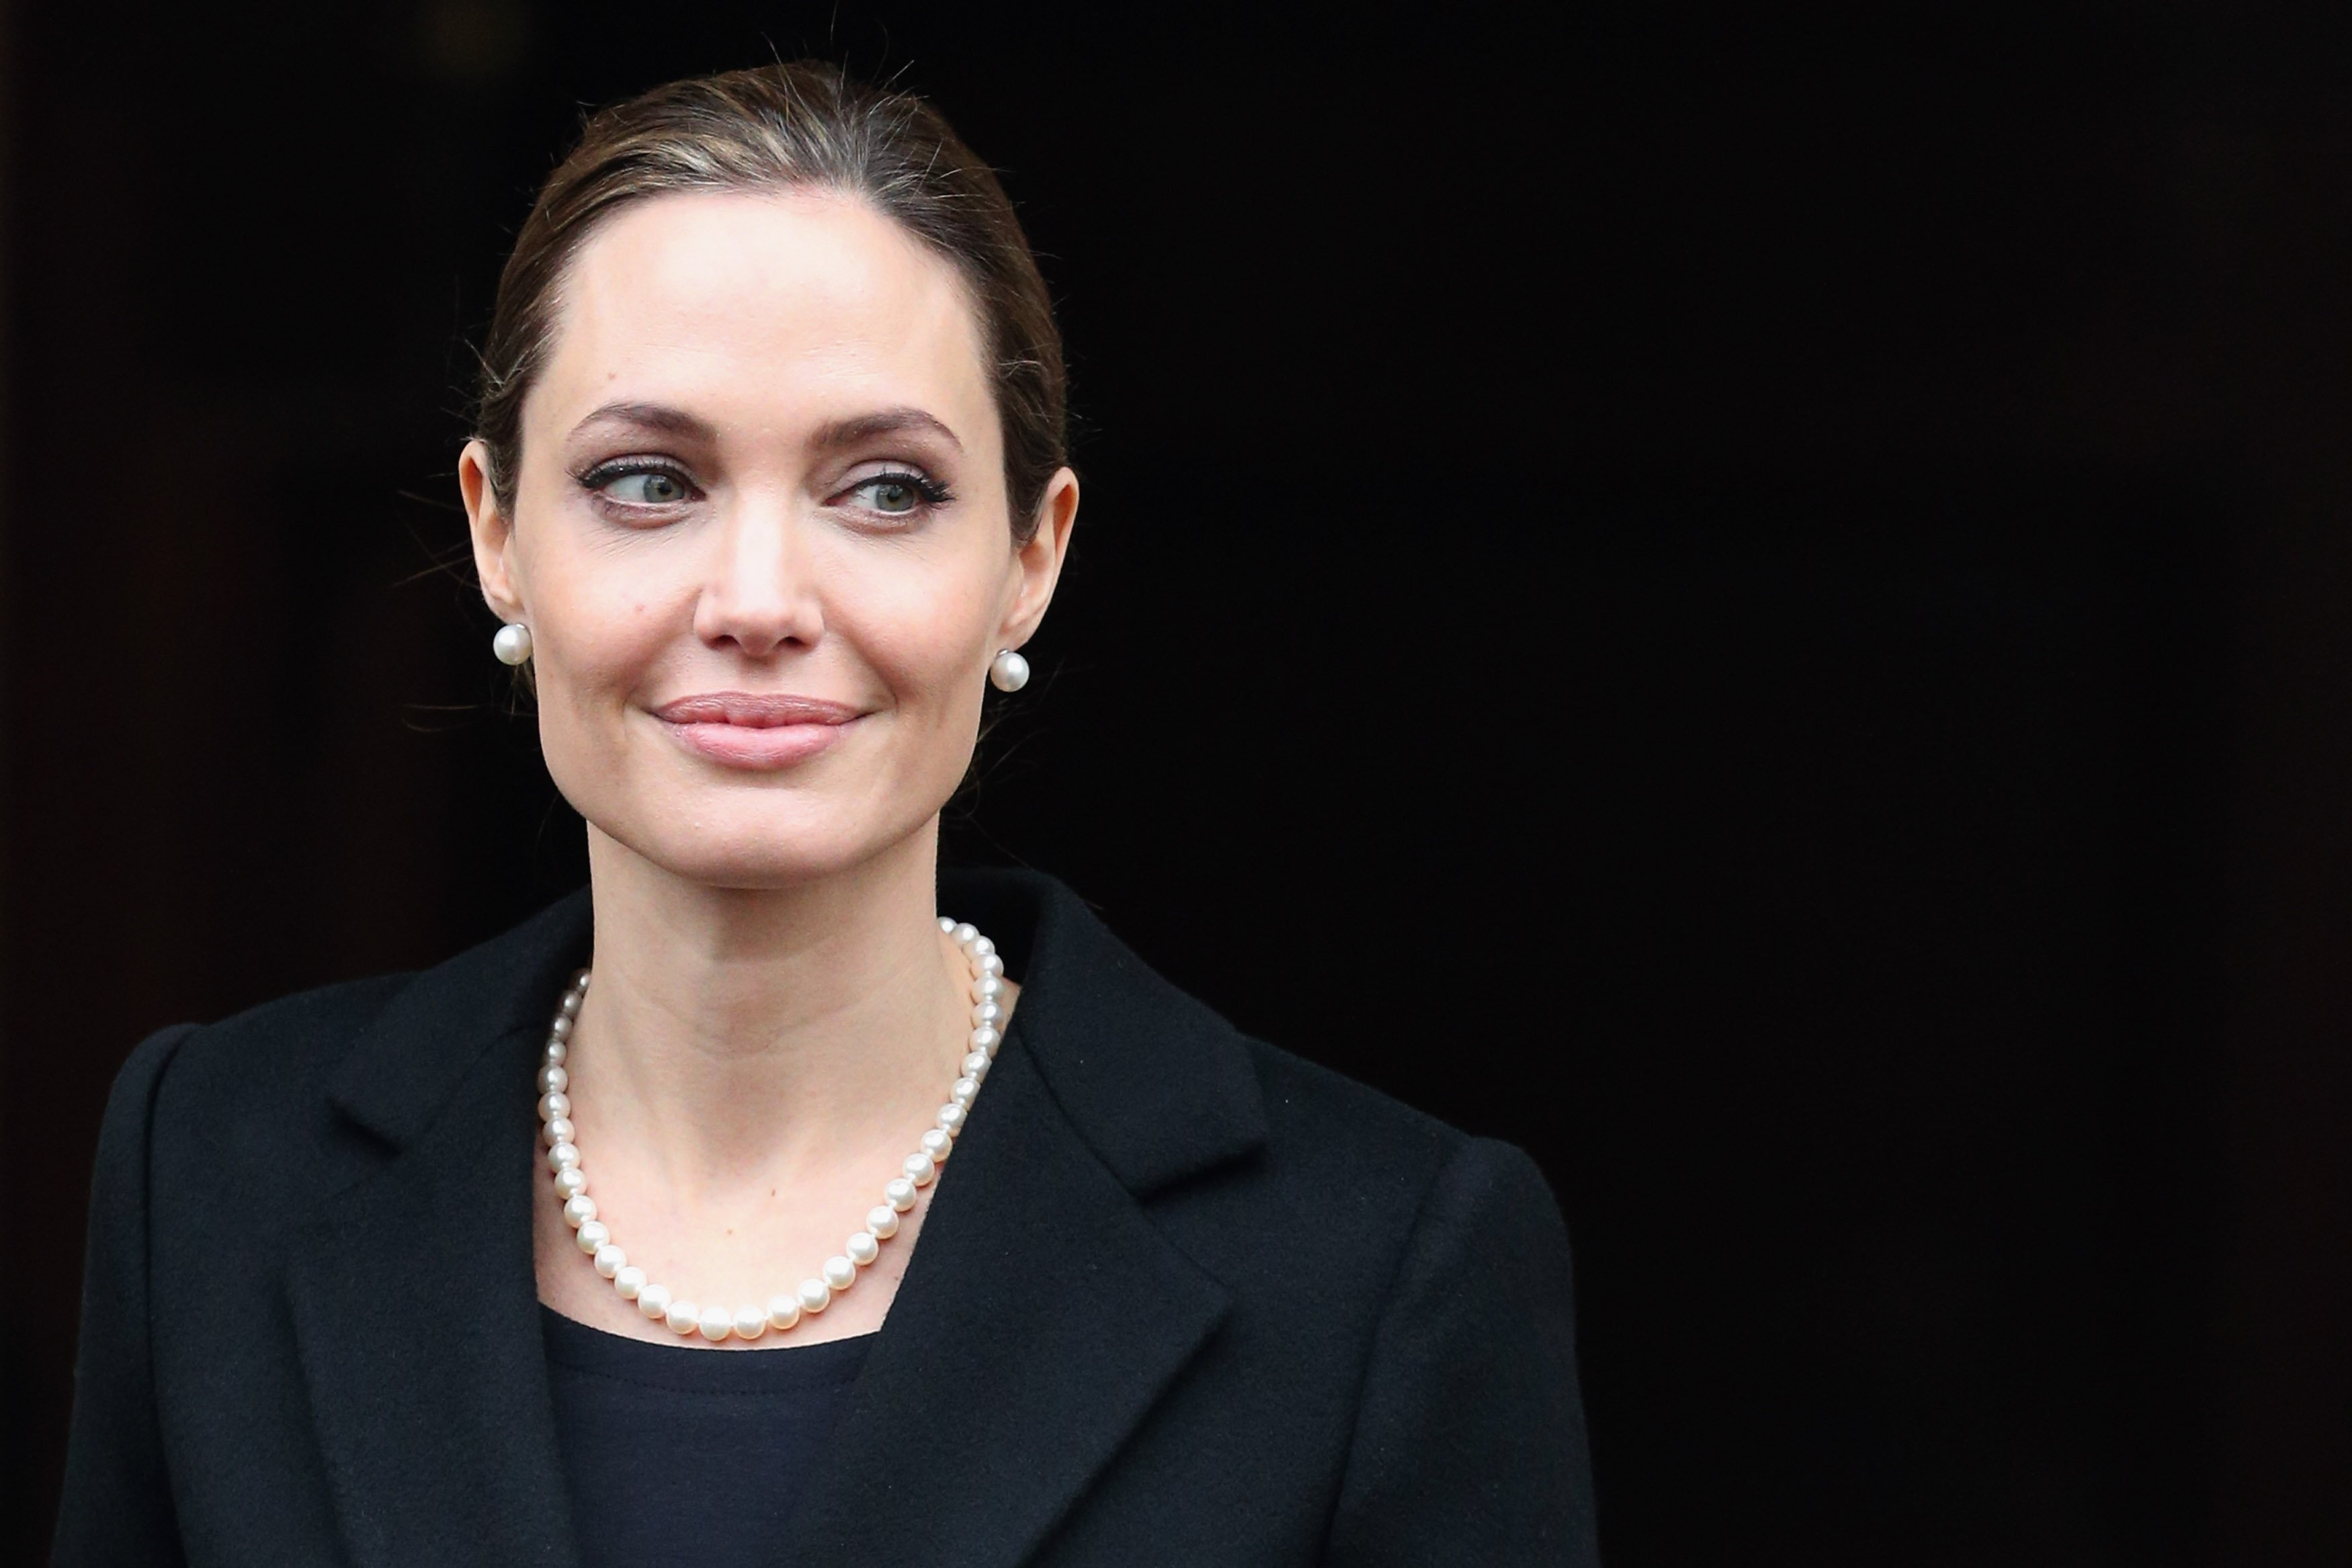 Image Credit: Getty Images/WireImage/Danny Martindale | Jolie at the G3 Summit in 2013